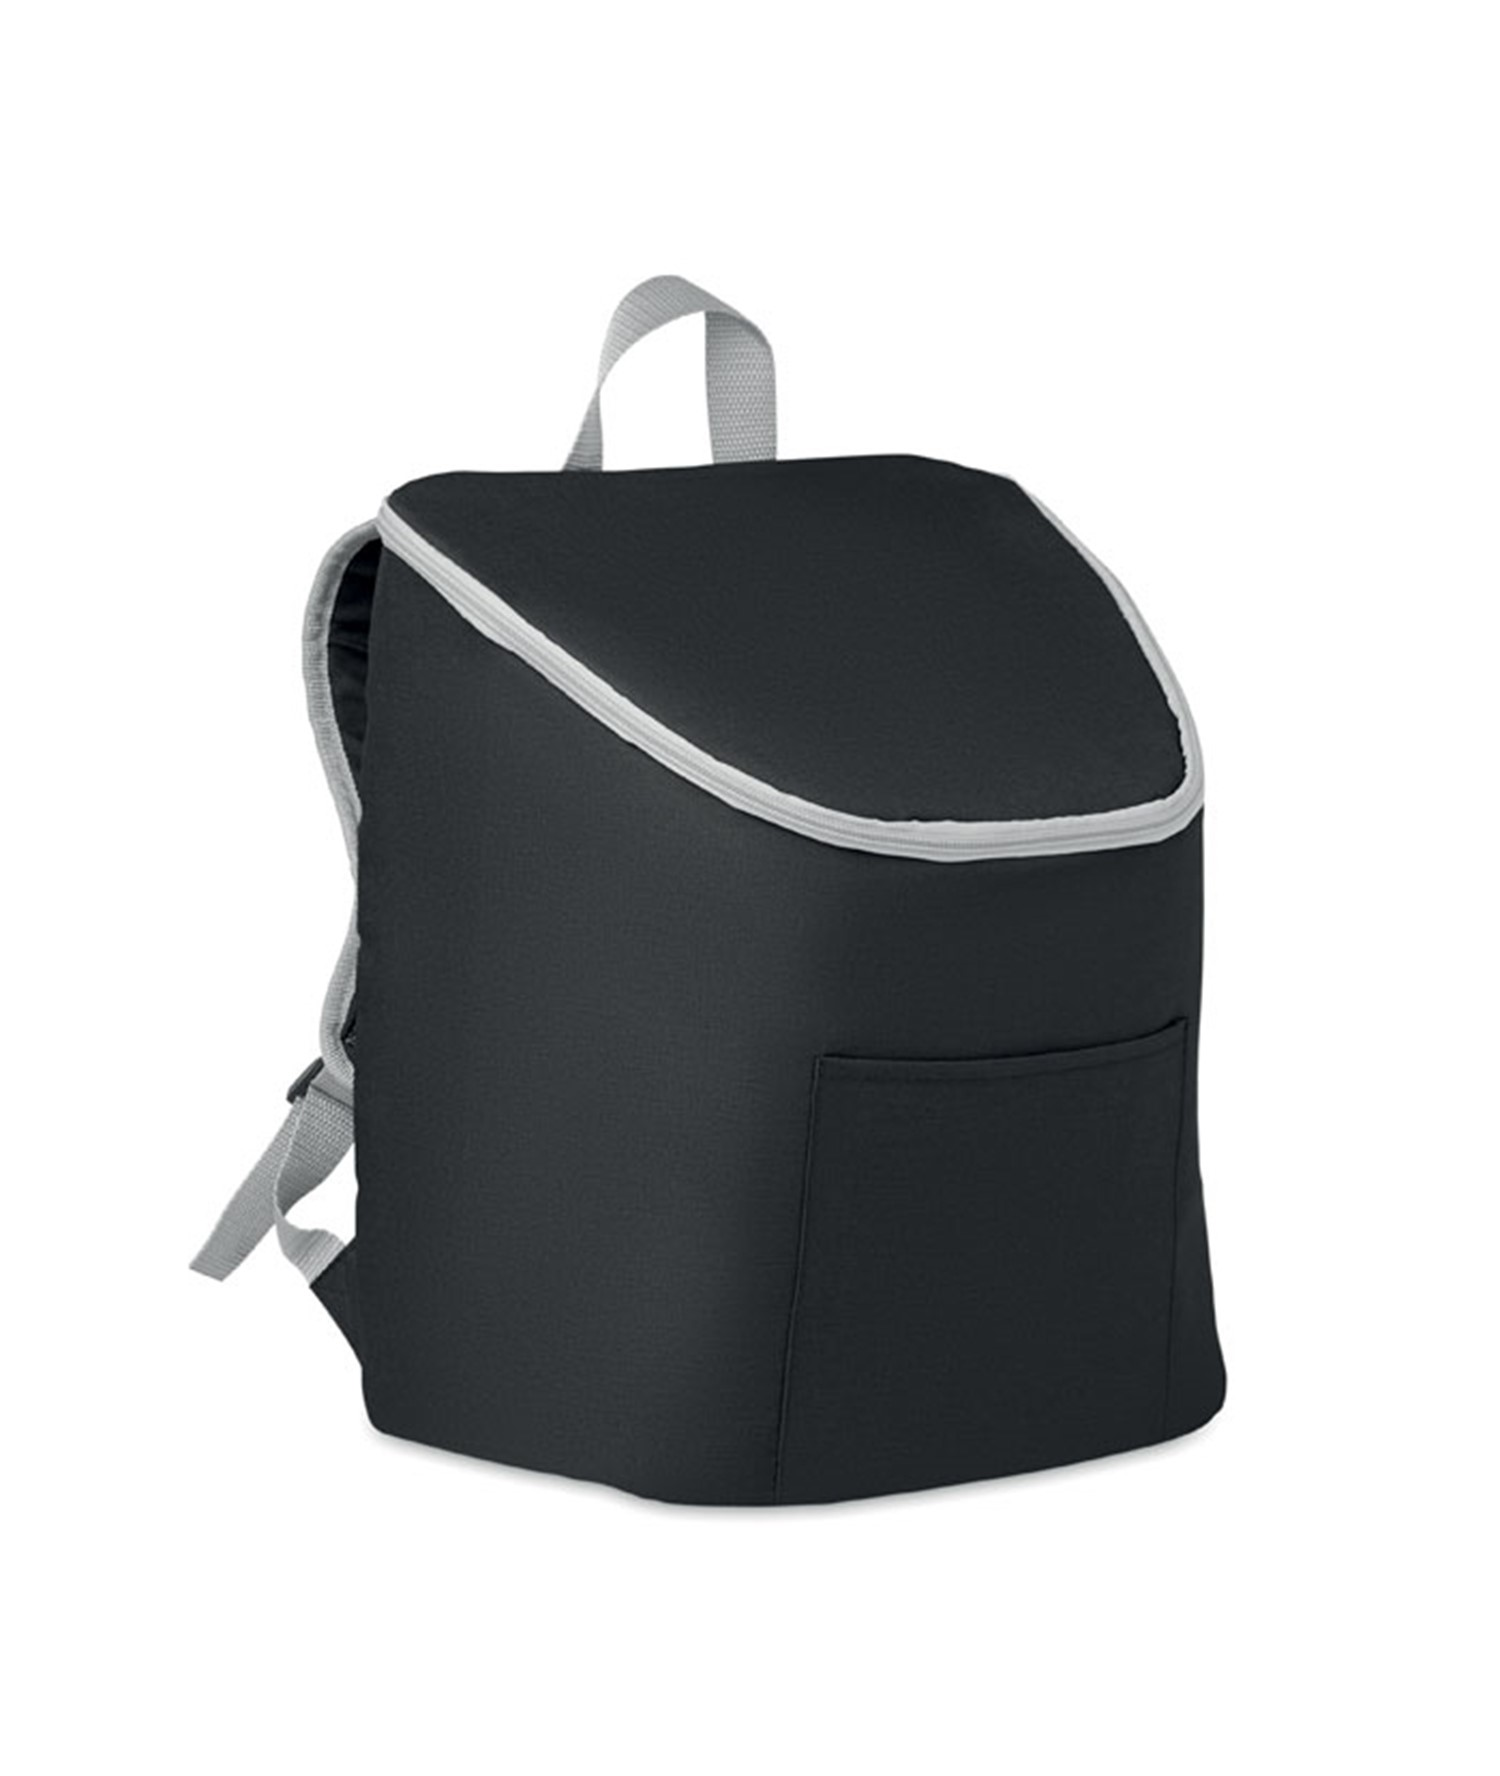 IGLO BAG - COOLER BAG AND BACKPACK